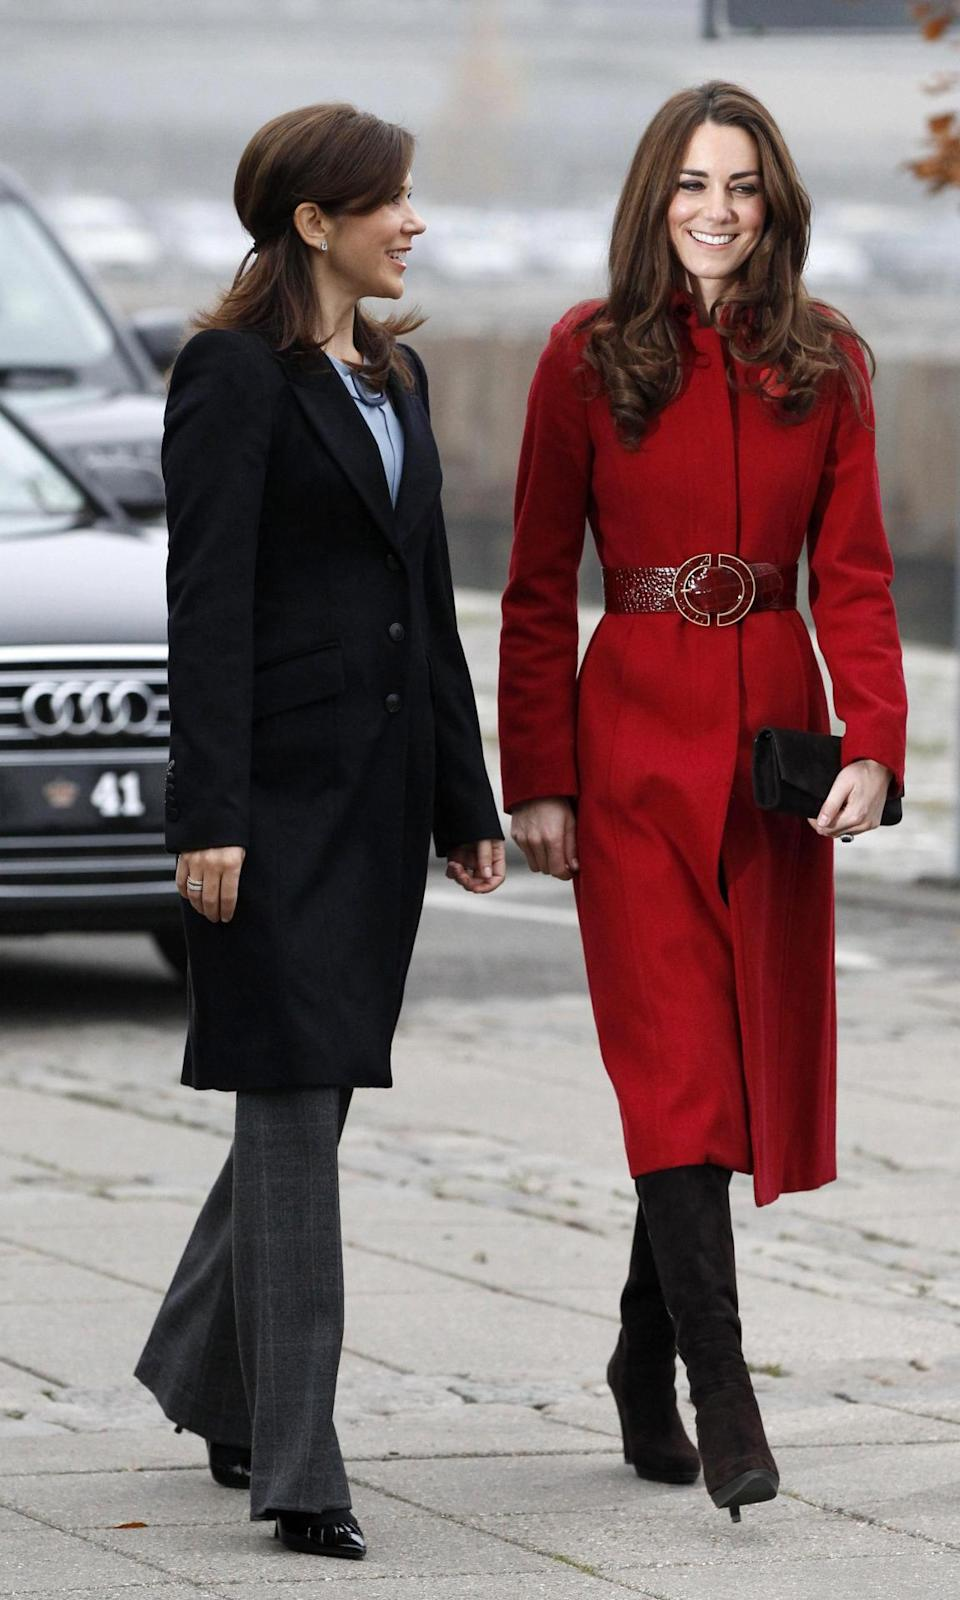 <p>Kate spent the day in Denmark wearing a rich red coat by L.K. Bennett and an ornate belt from Reiss. She finished with heeled Stuart Weitzman boots.</p><p><i>[Photo: PA]</i></p>